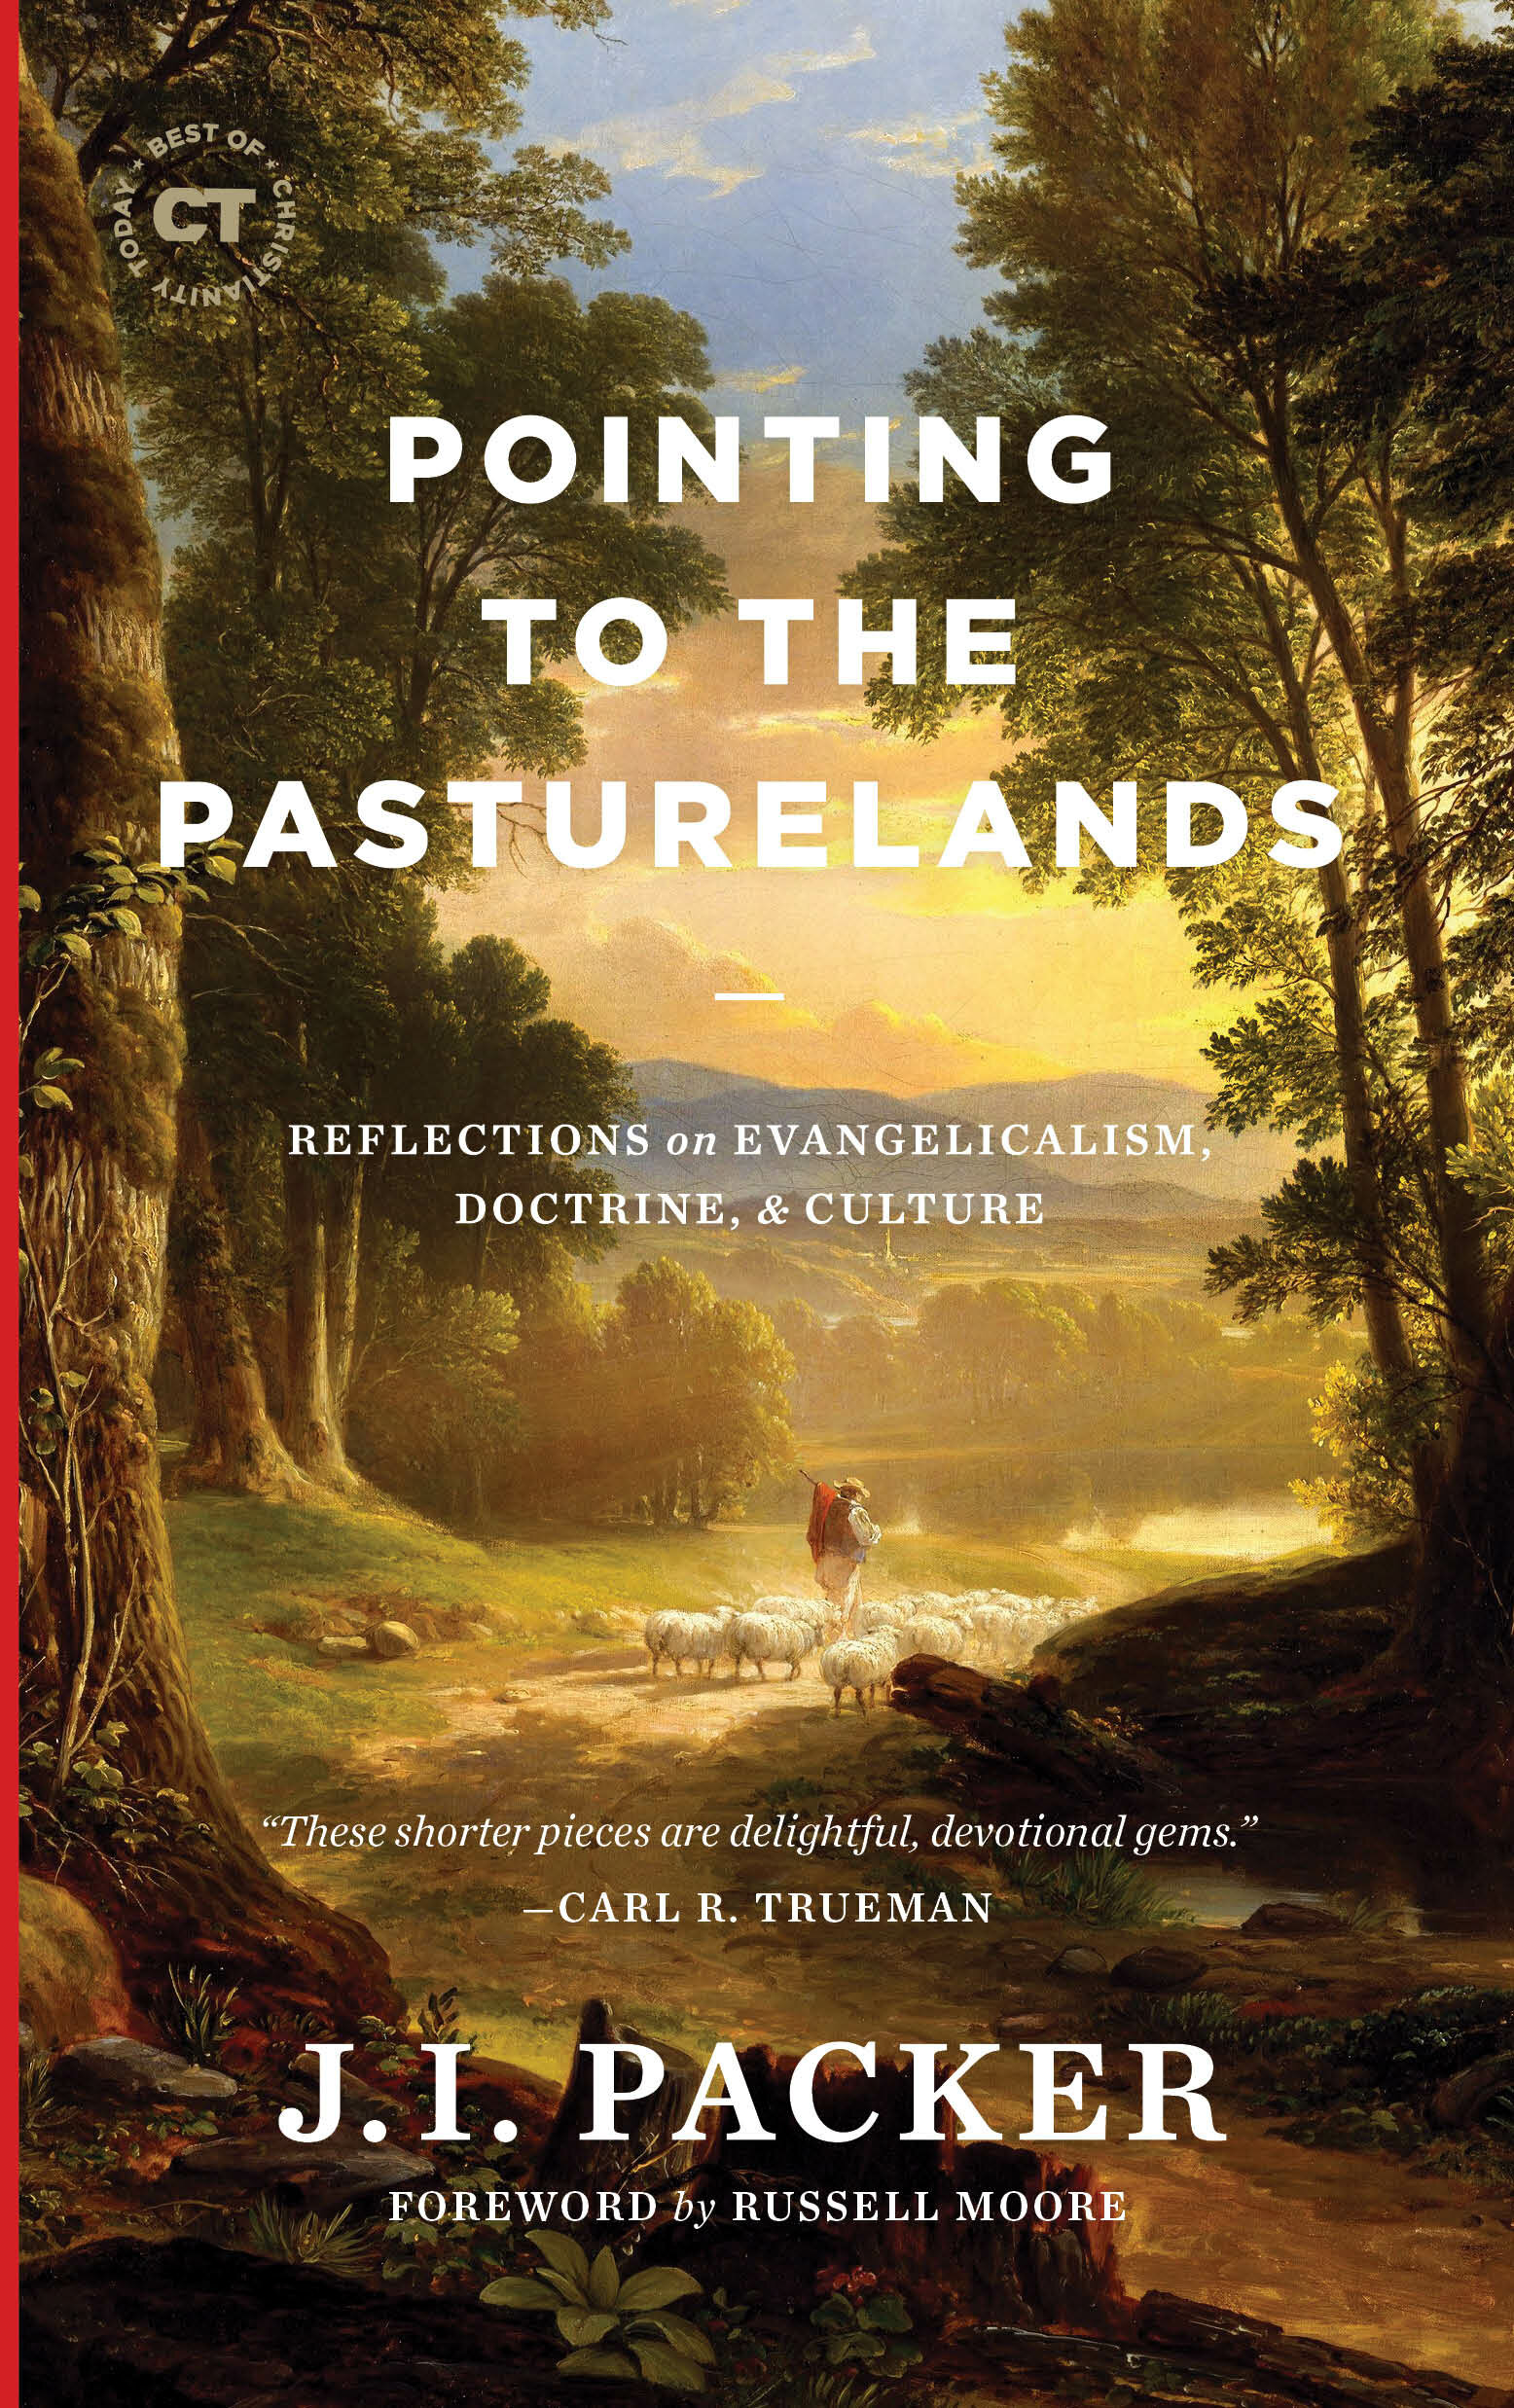 Pointing to the Pasturelands: Reflections on Evangelicalism, Doctrine, & Culture